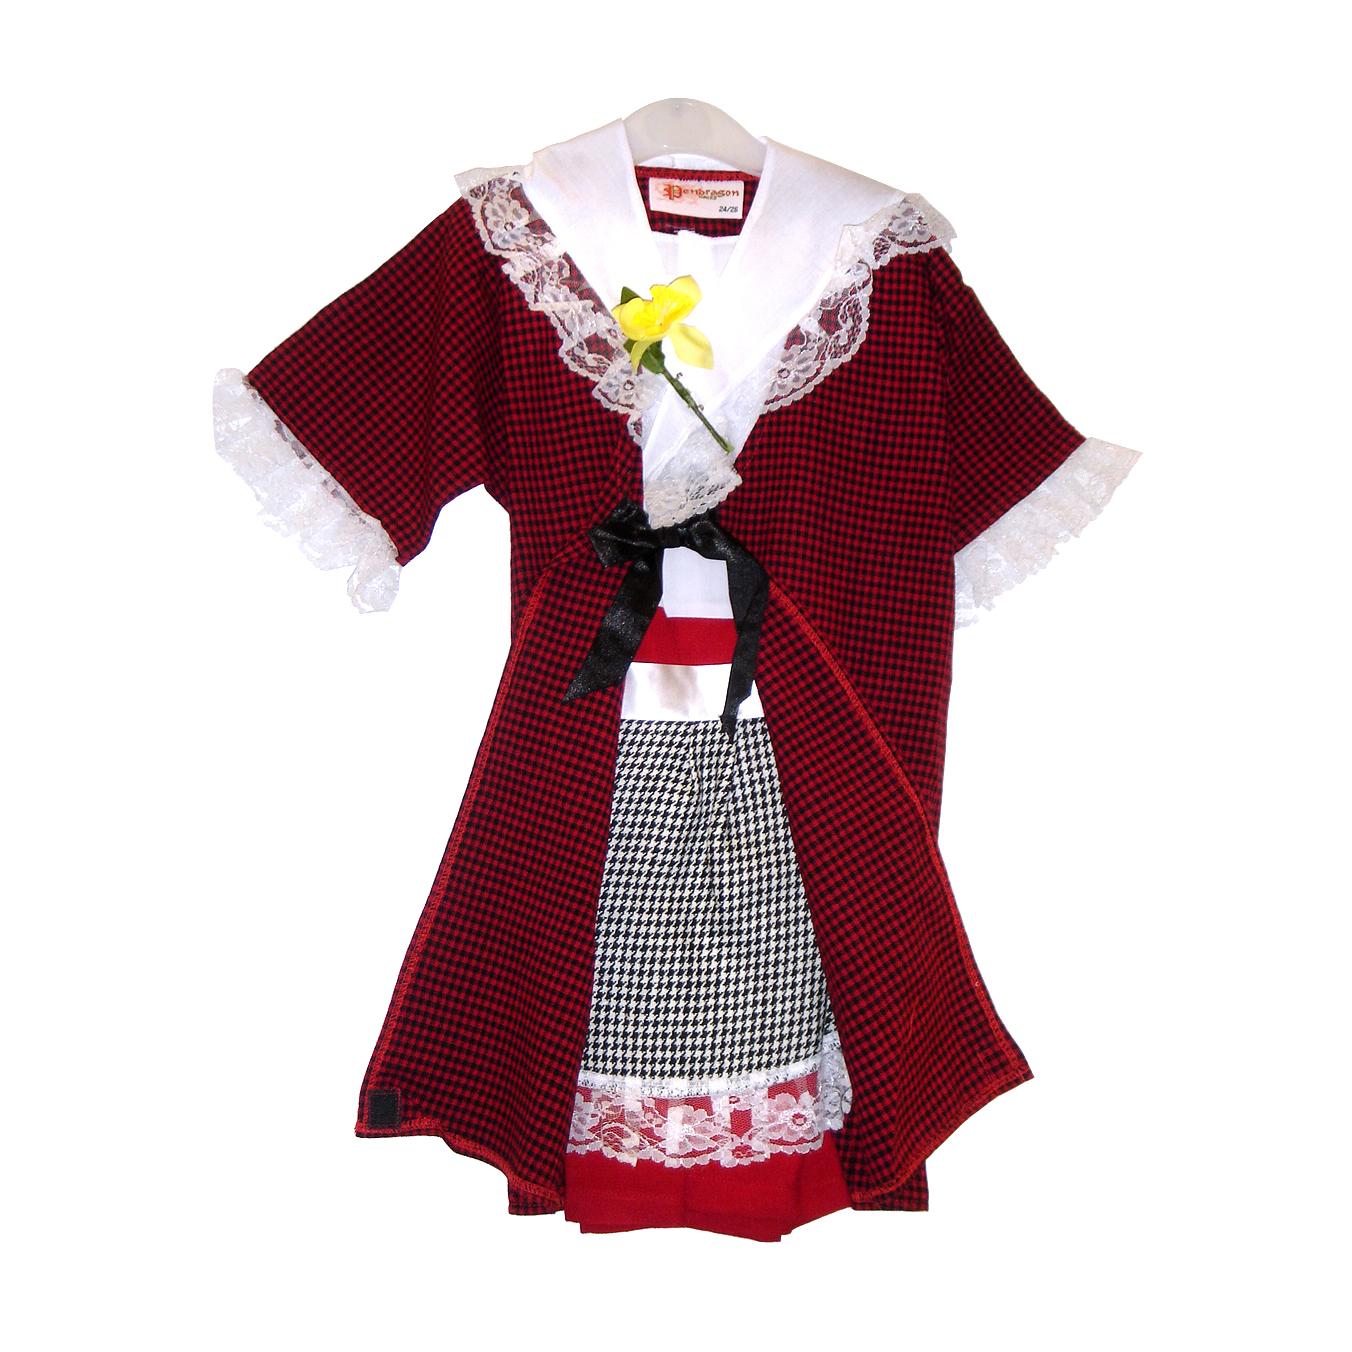 ST DAVIDS DAY WELSH COSTUME 1 TO 2 YEARS